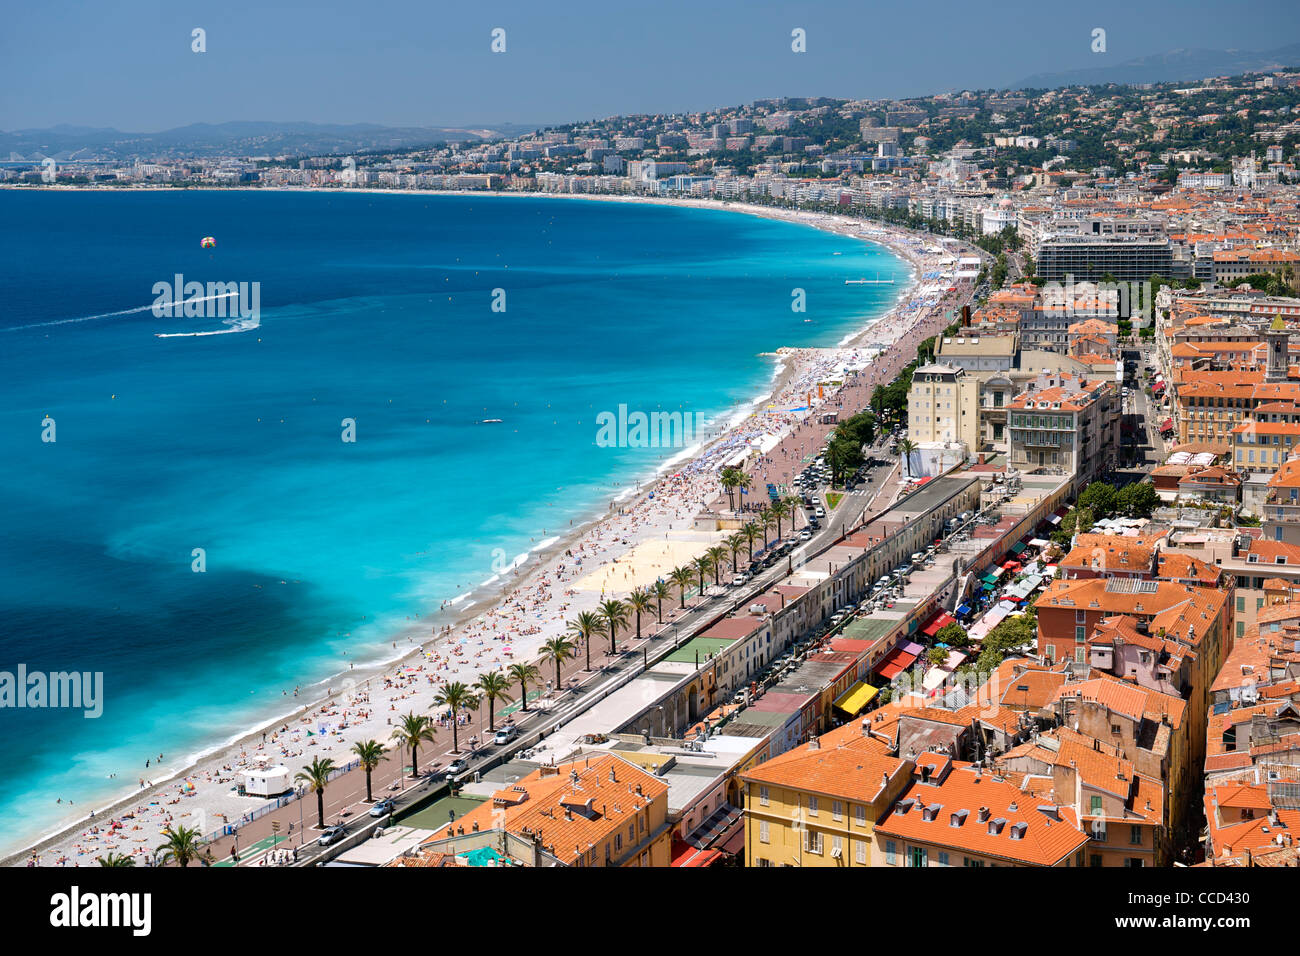 The Baie des Anges (Bay of Angels) and the city of Nice on the Mediterranean coast in southern France. - Stock Image